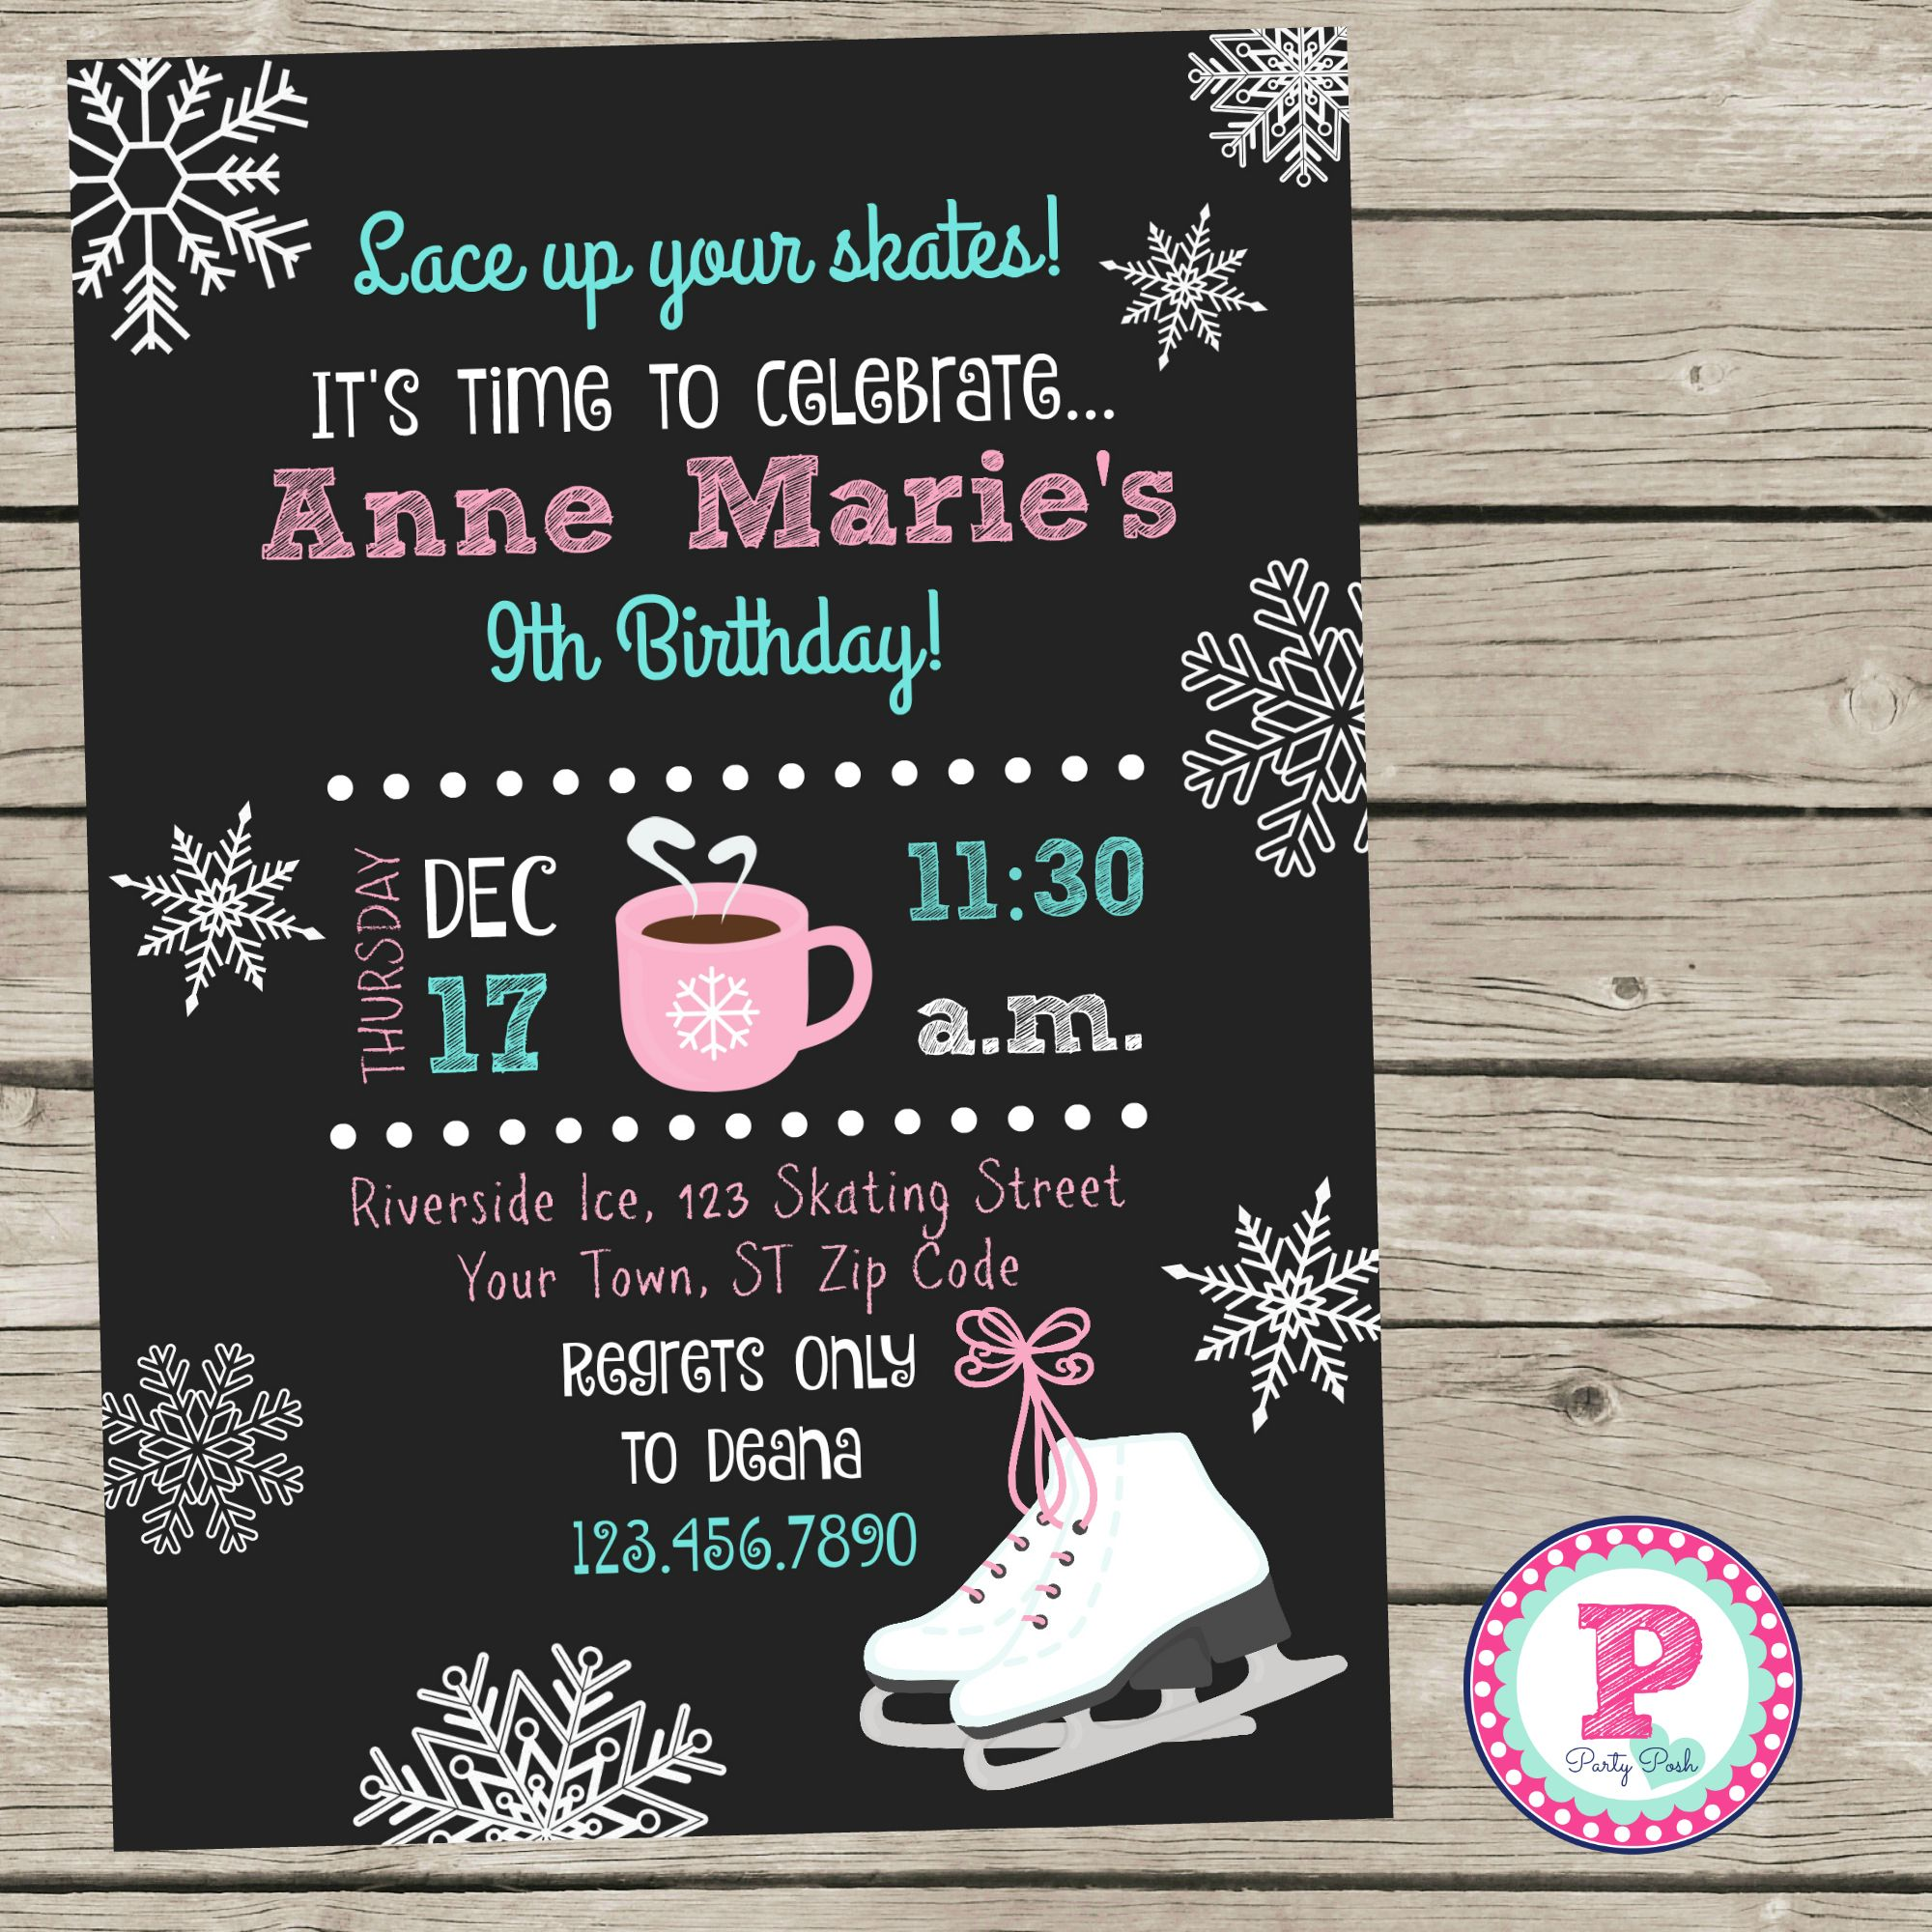 Chalkboard Ice Skating Party Invitation. | Party time | Pinterest ...